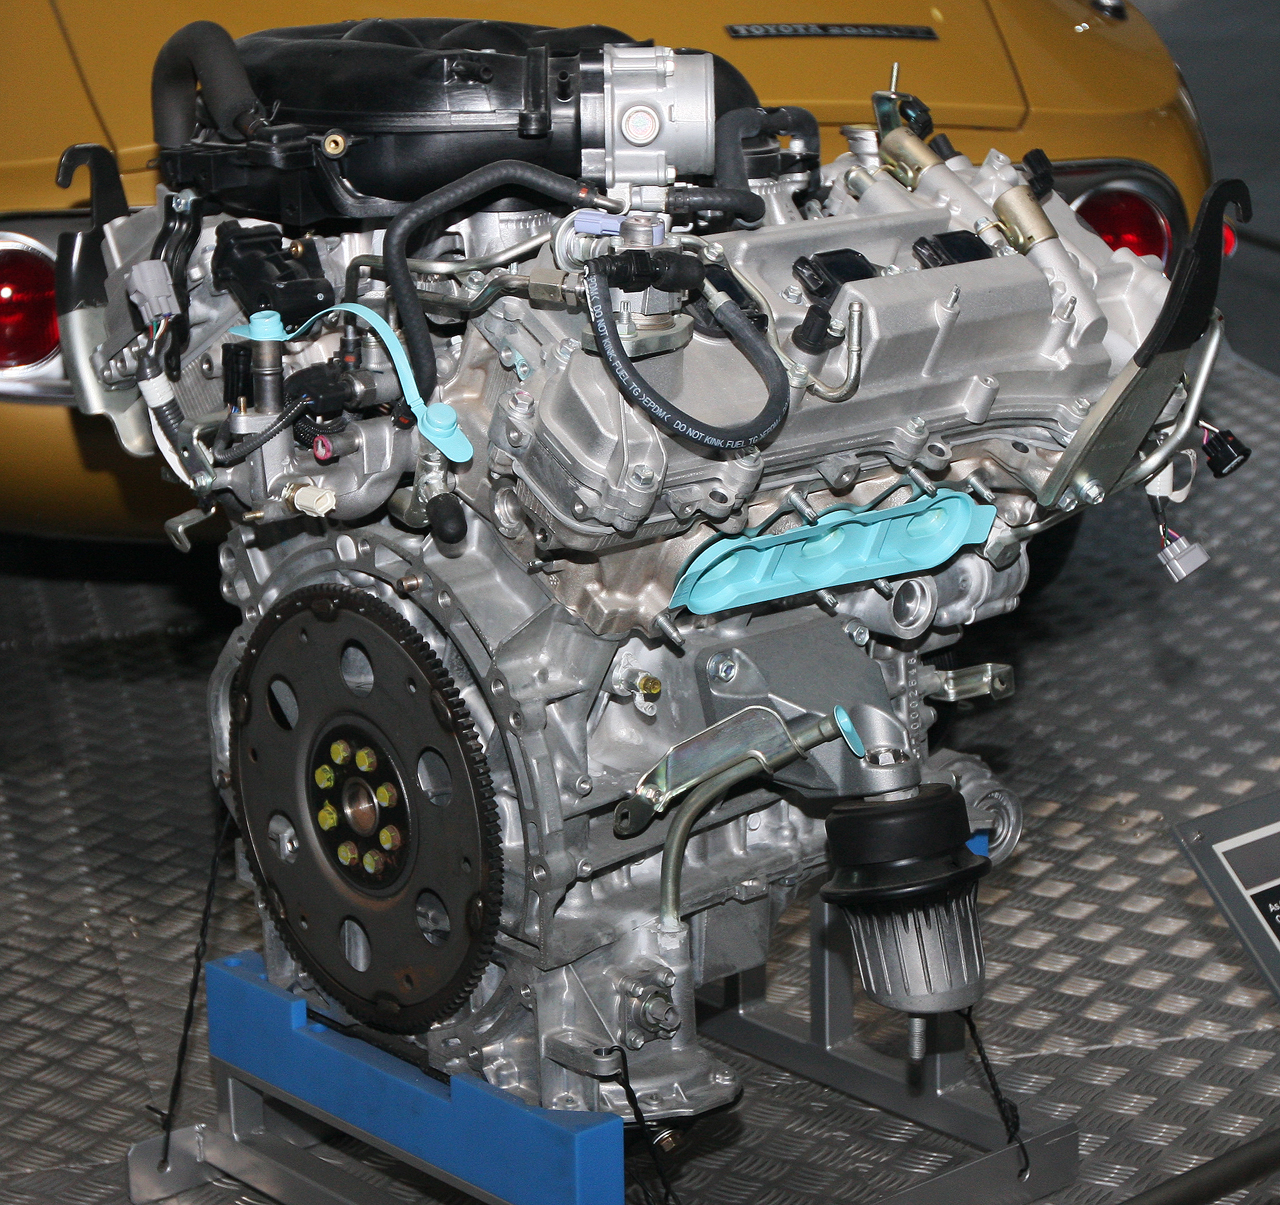 File:2004 Toyota 4GR-FSE Type engine rear.jpg